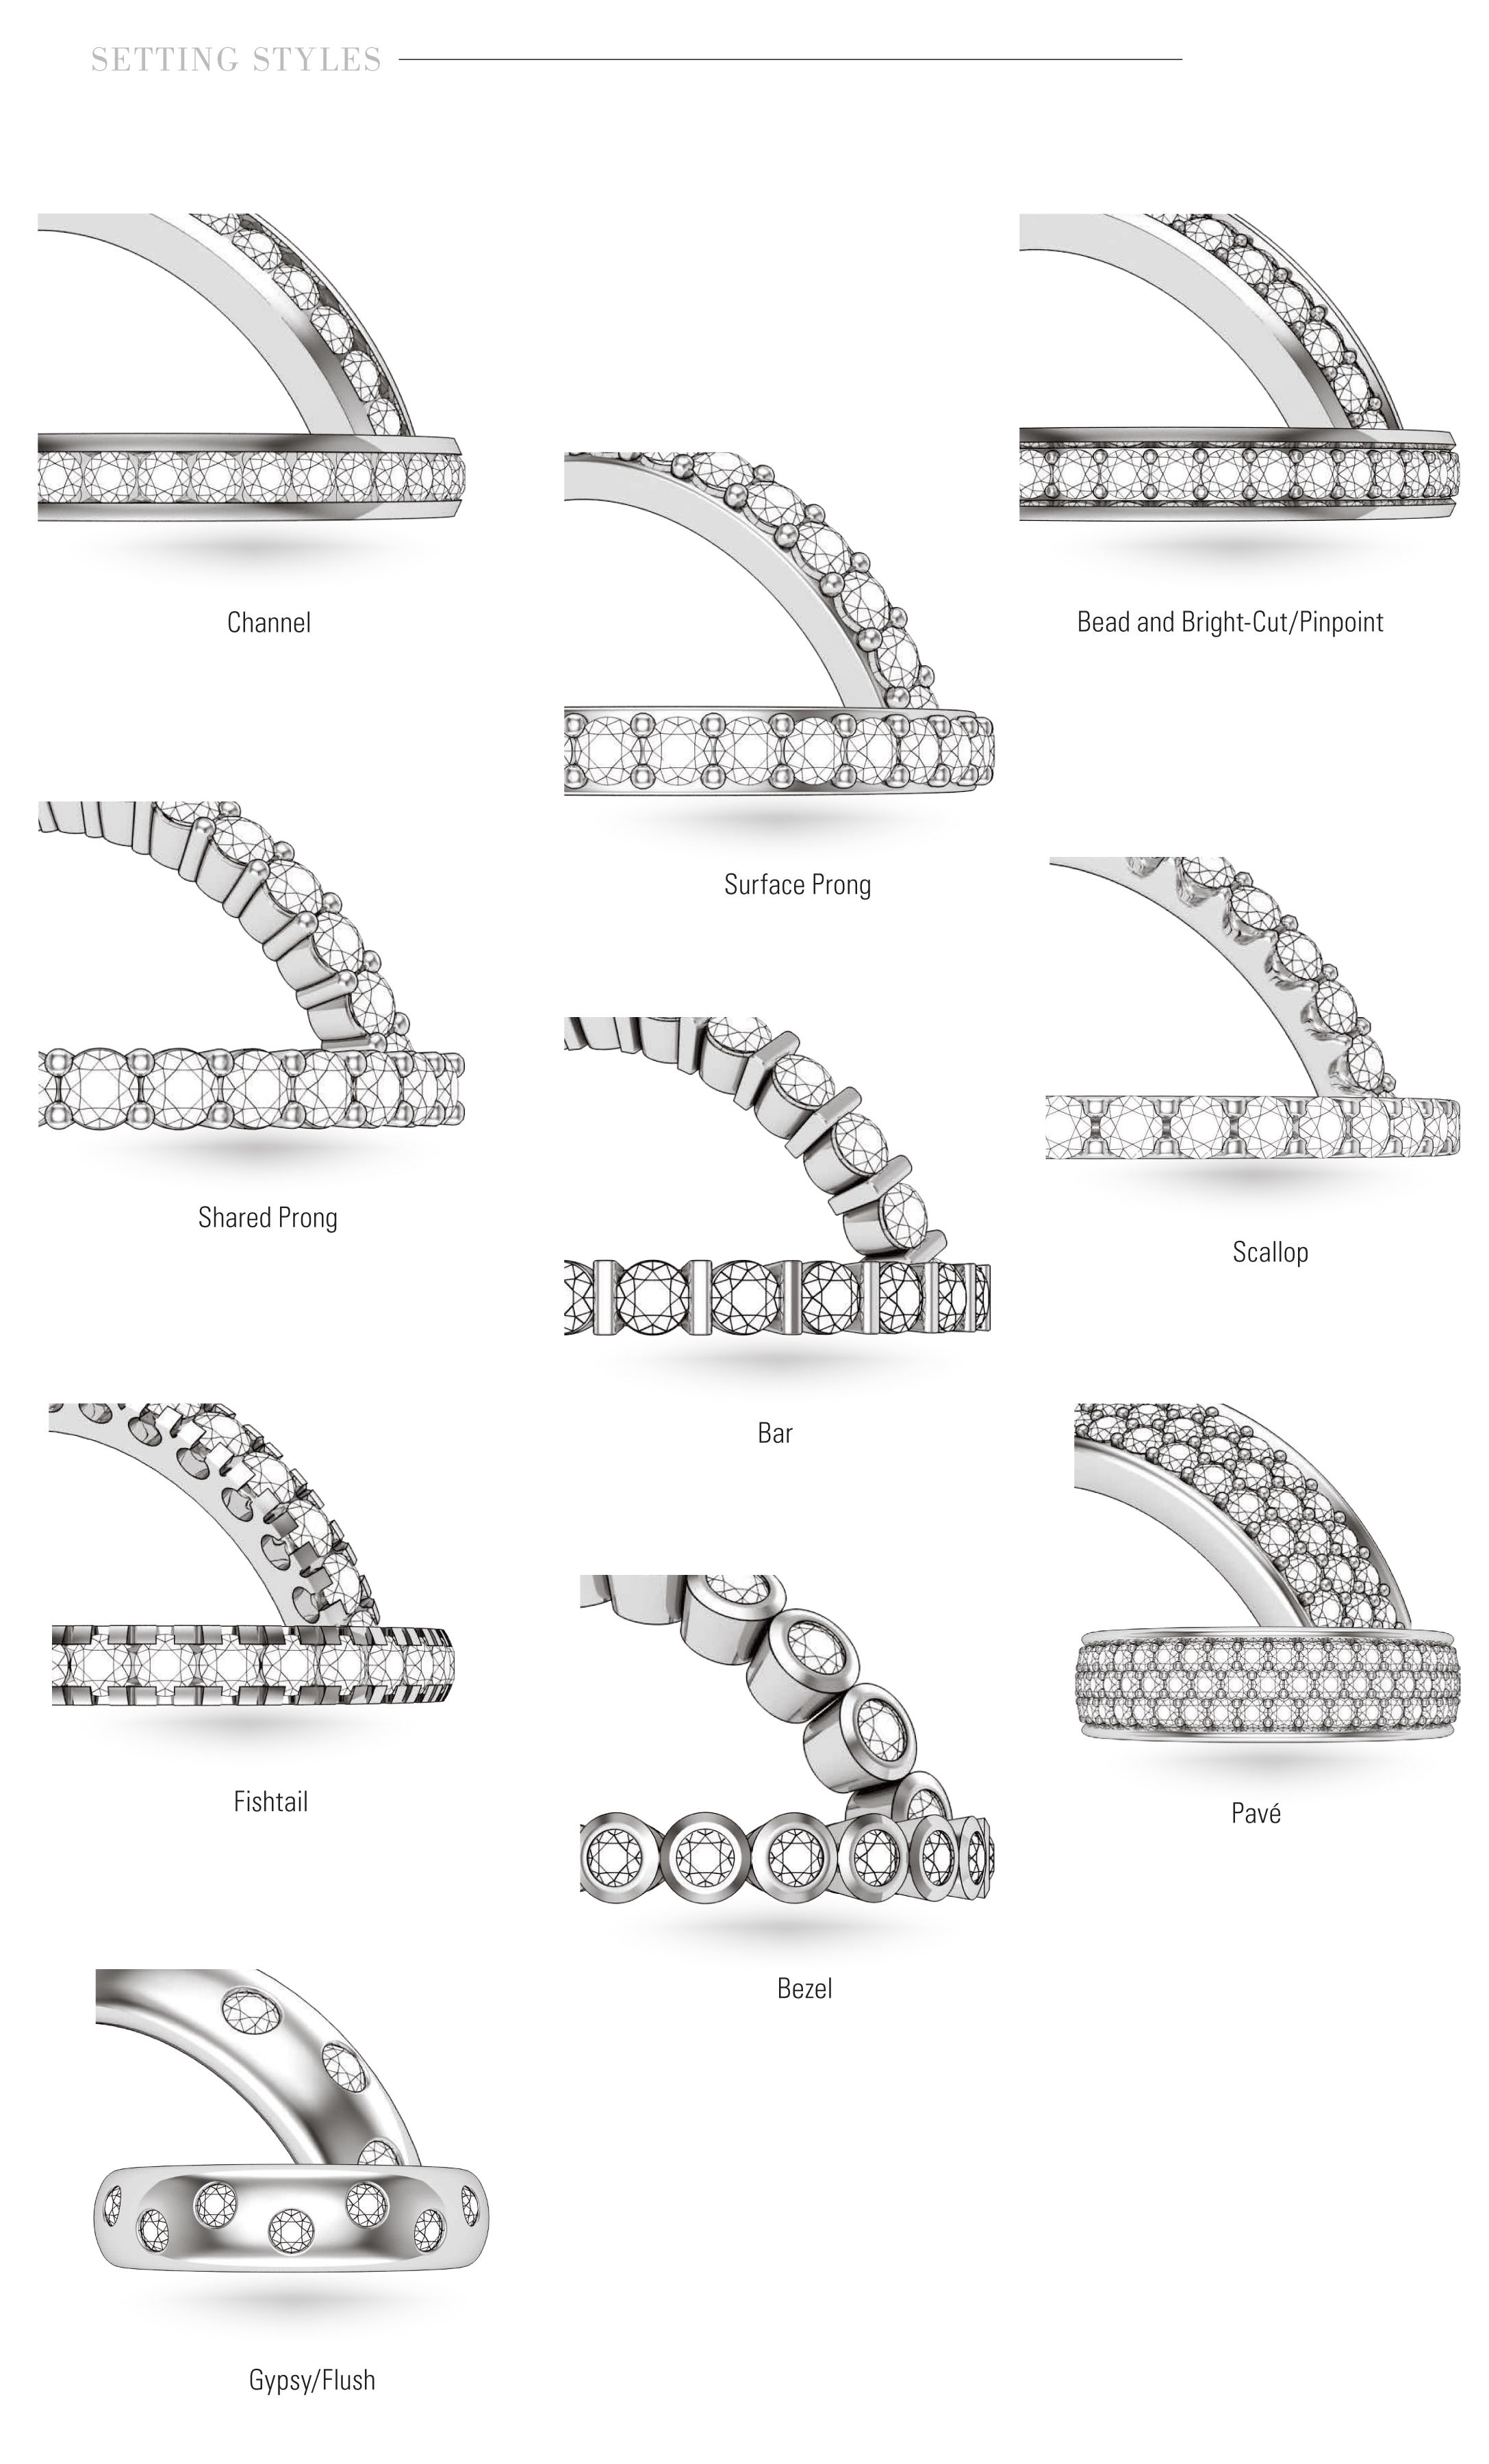 material styles quality gem jewelry store metal brands range great modern selections sales discount accessories official and eleven band marvelous favors bands sets silver wedding engagement product available ring gold web